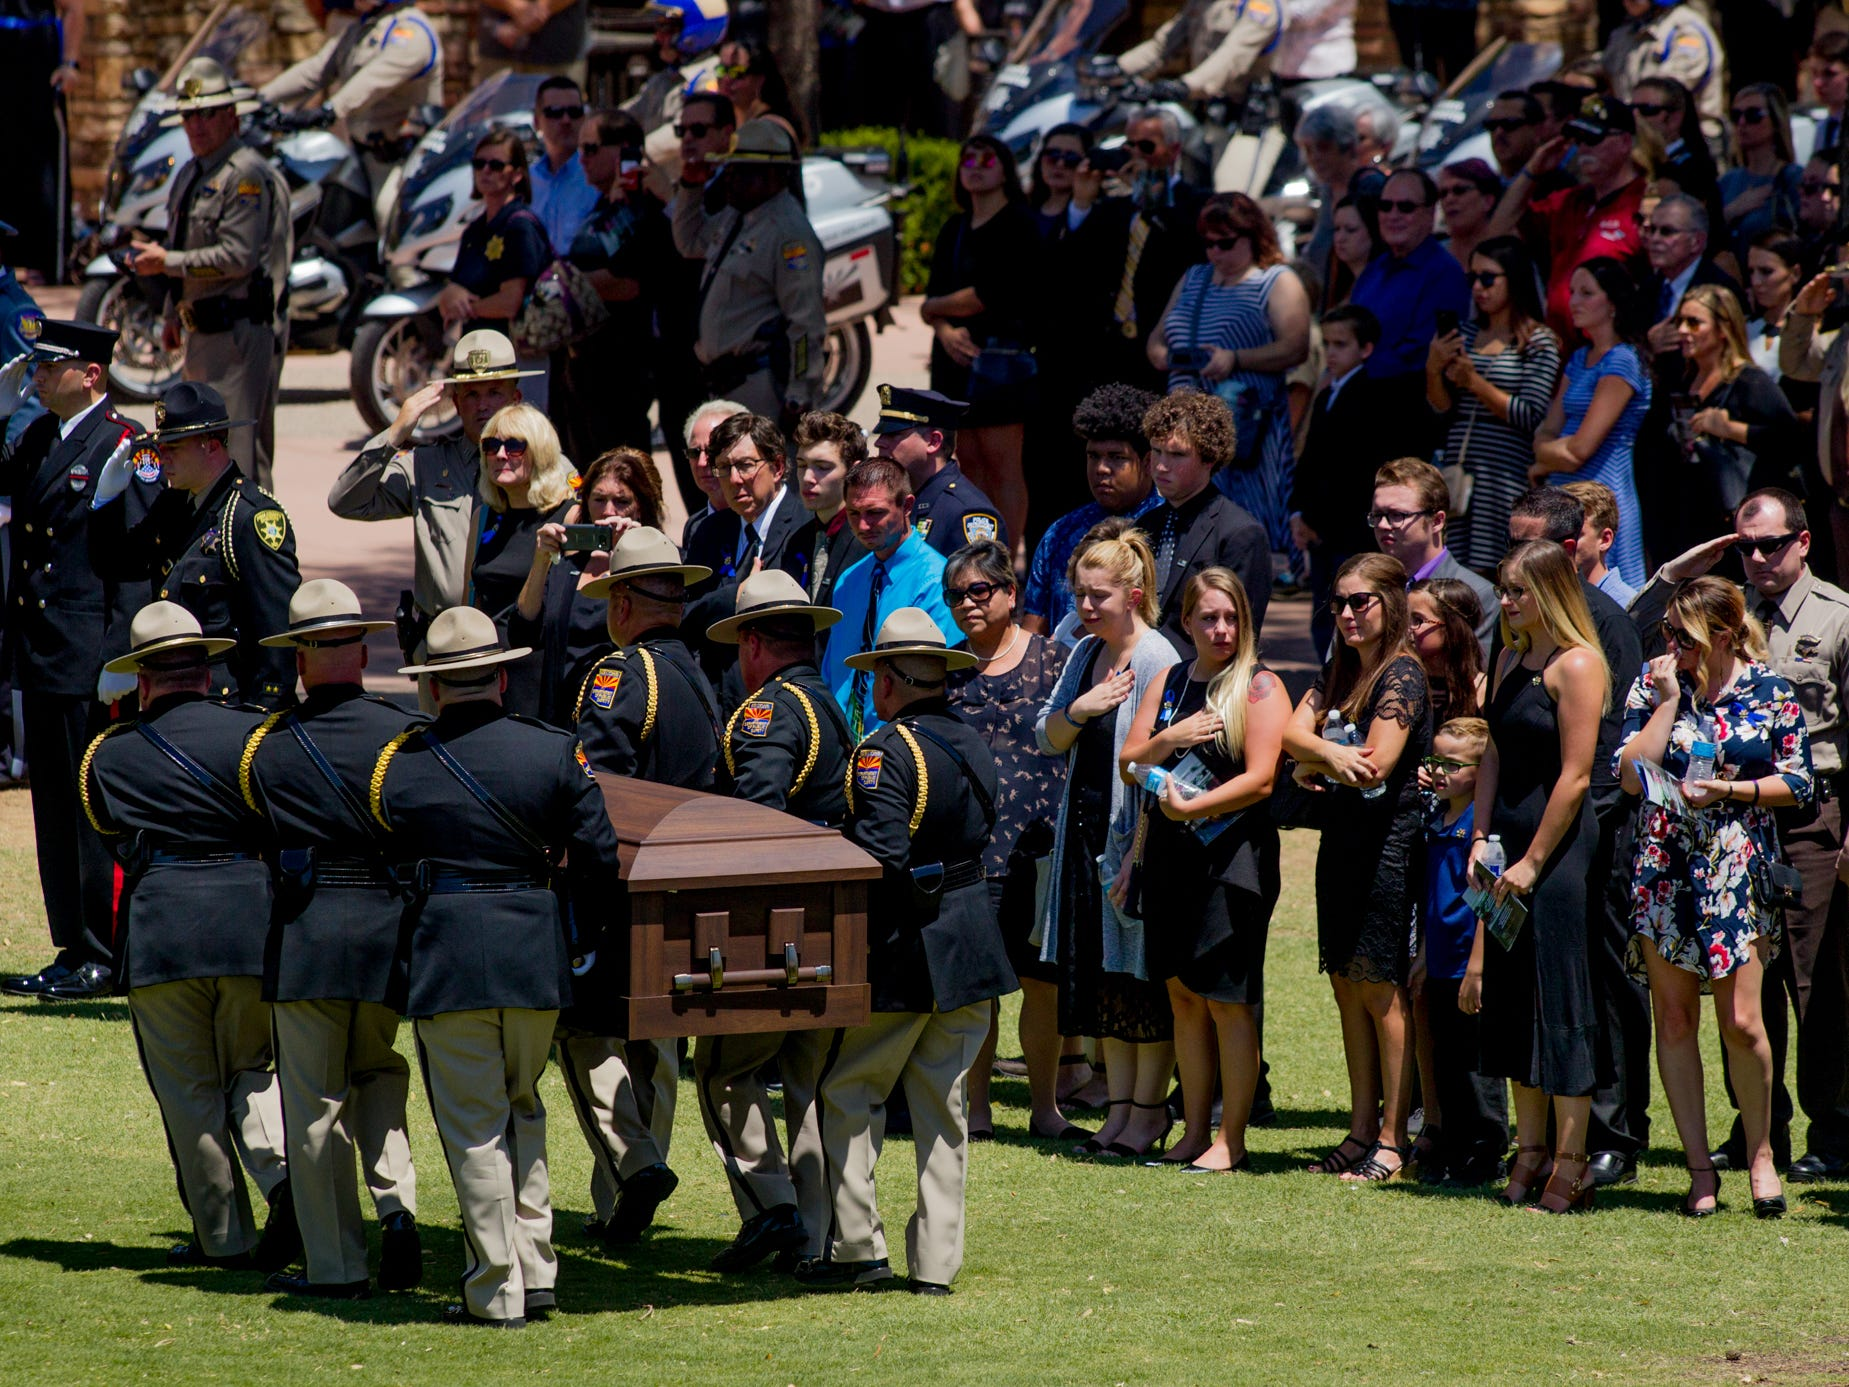 The casket of fallen DPS Trooper Tyler Edenhofer is taken to the hearse on Aug. 3, 2018, during the funeral at Christ's Church of the Valley in Peoria.